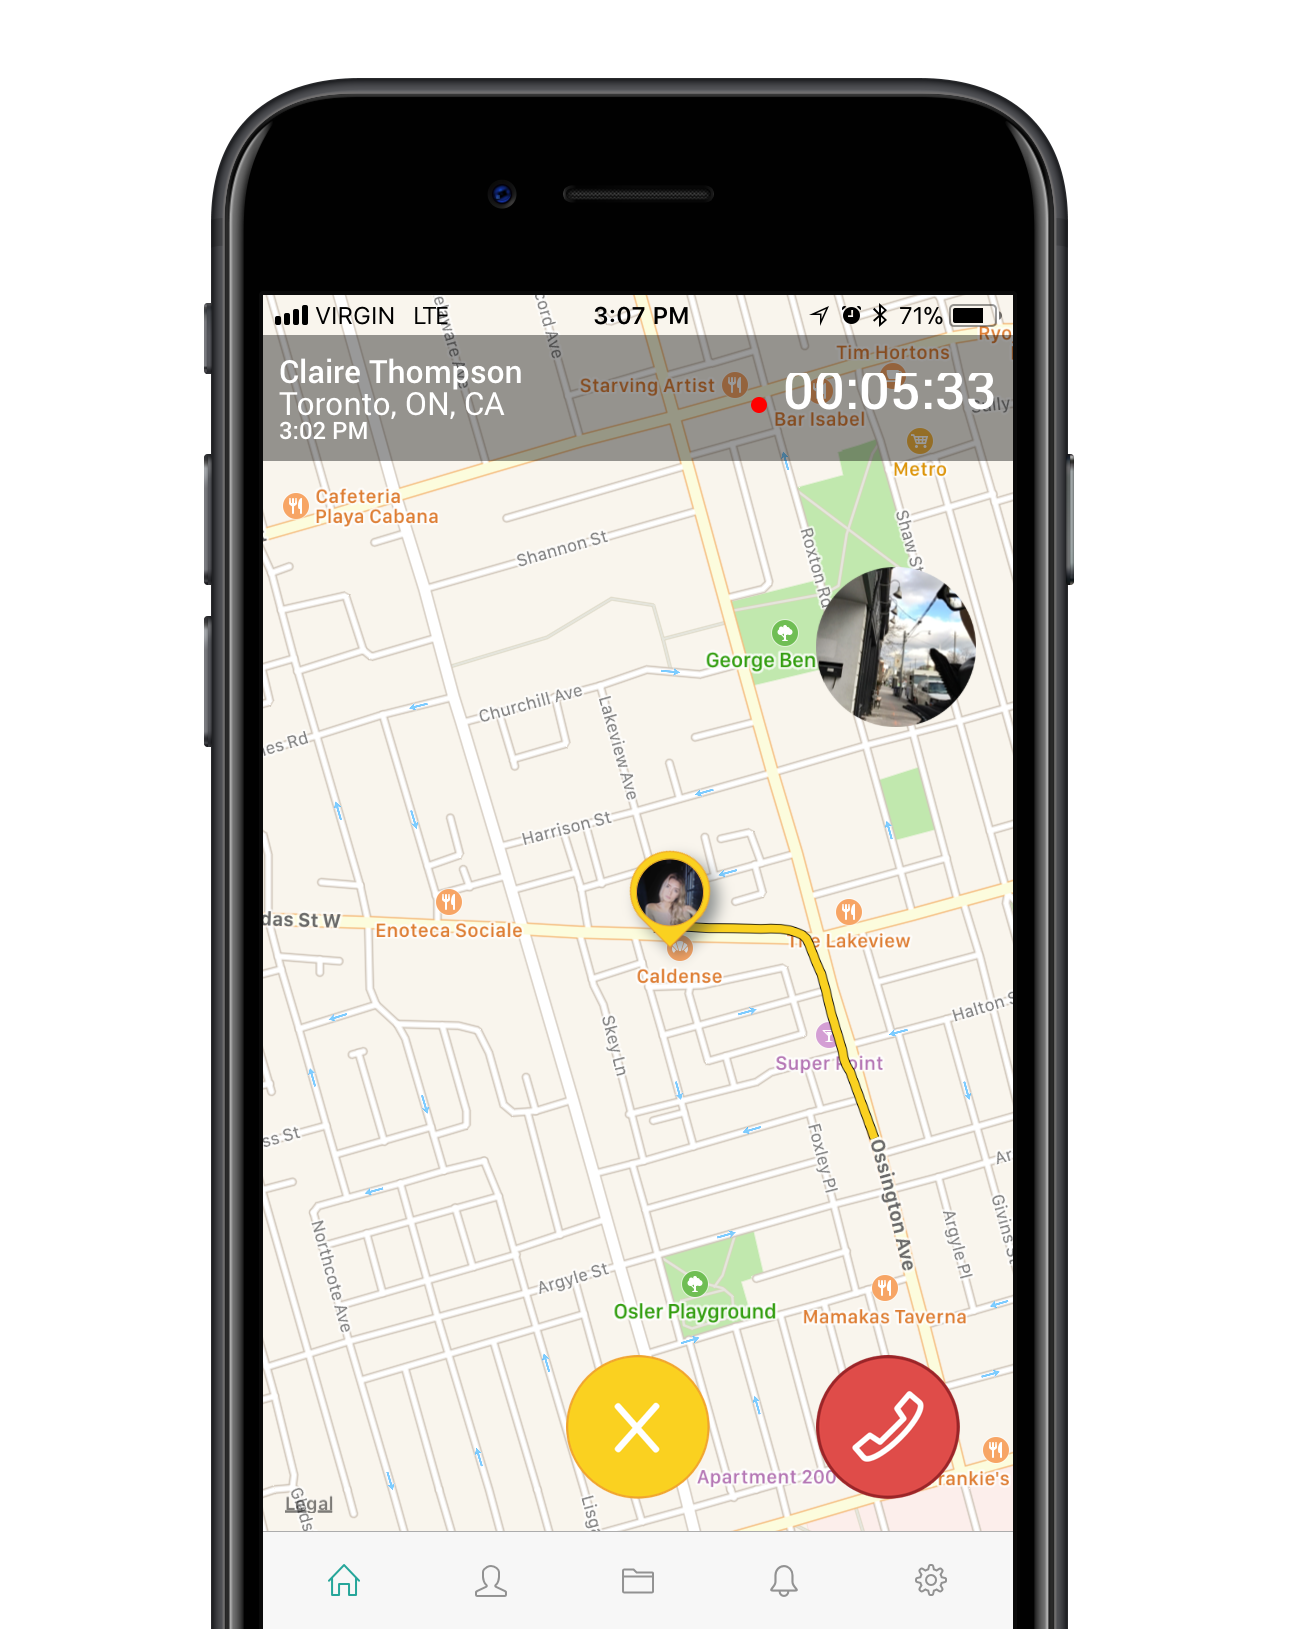 Easily share your location, photos, and audio infromation with your loved ones in real-time